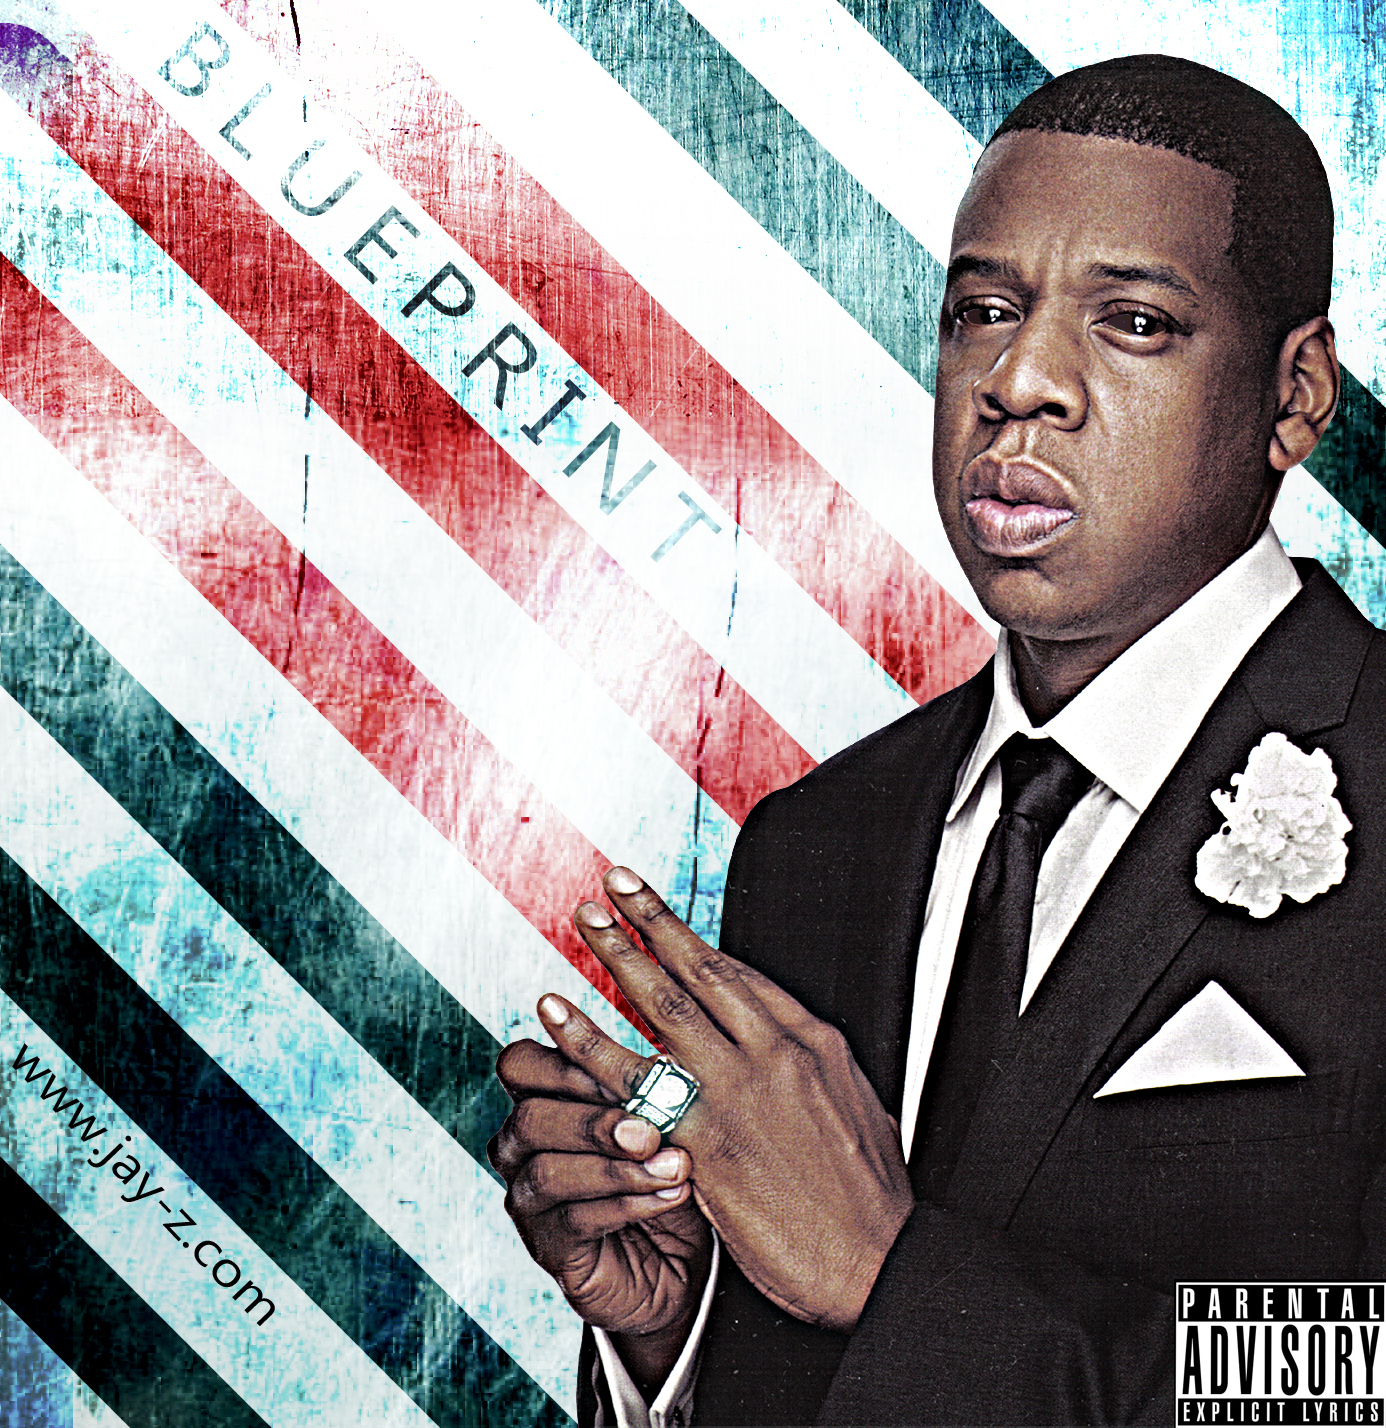 Jay z images the blueprint 3 jay z cover hd wallpaper and background jay z images the blueprint 3 jay z cover hd wallpaper and background photos malvernweather Images